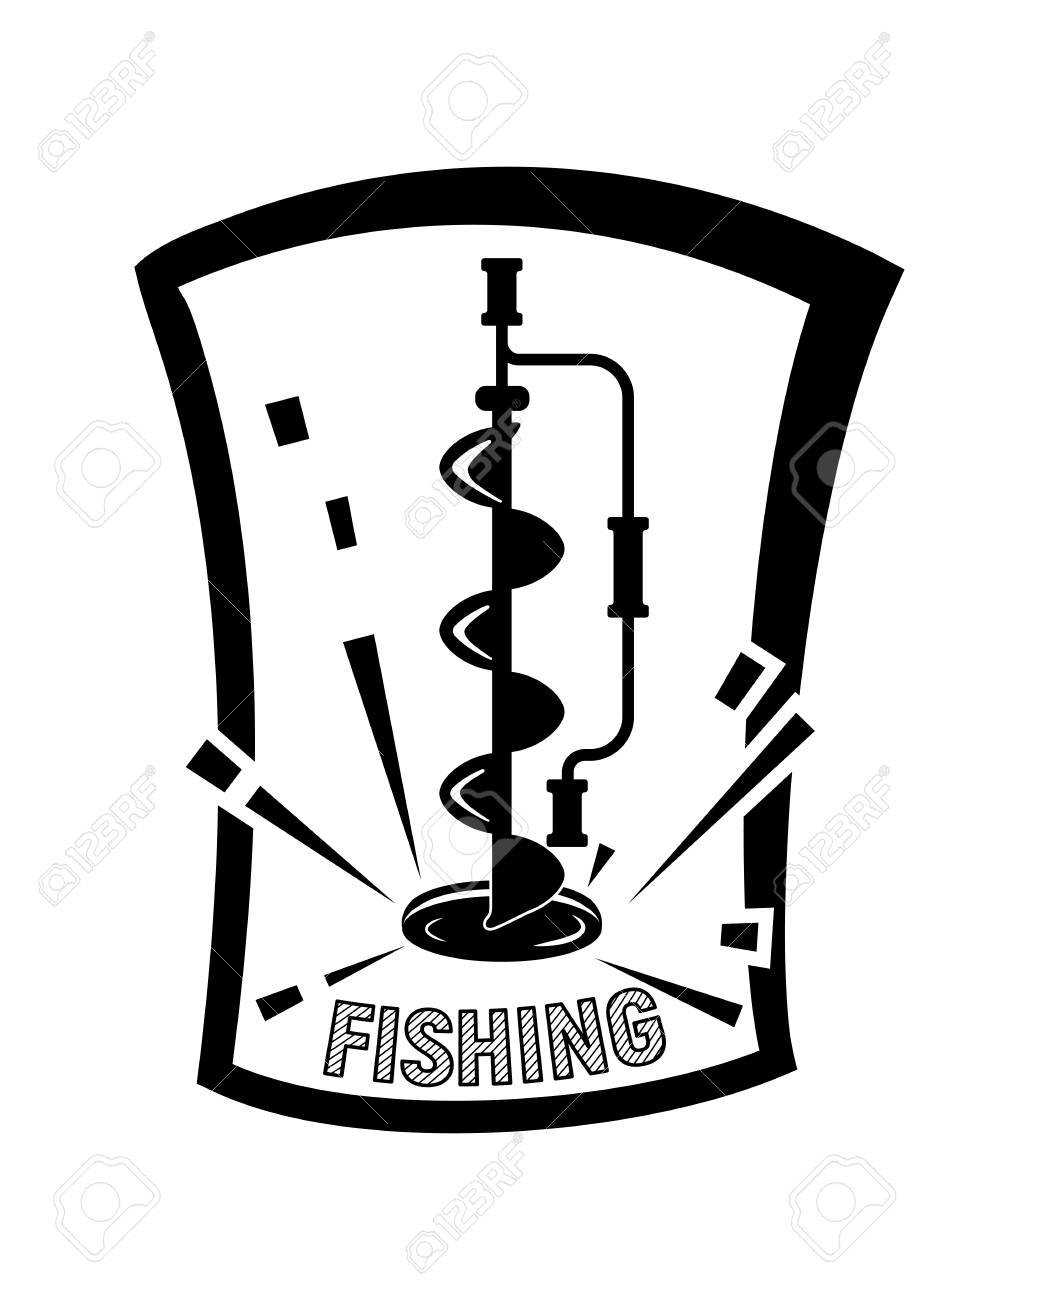 winter ice fishing black and white vector illustration simple royalty free cliparts vectors and stock illustration image 106955717 winter ice fishing black and white vector illustration simple